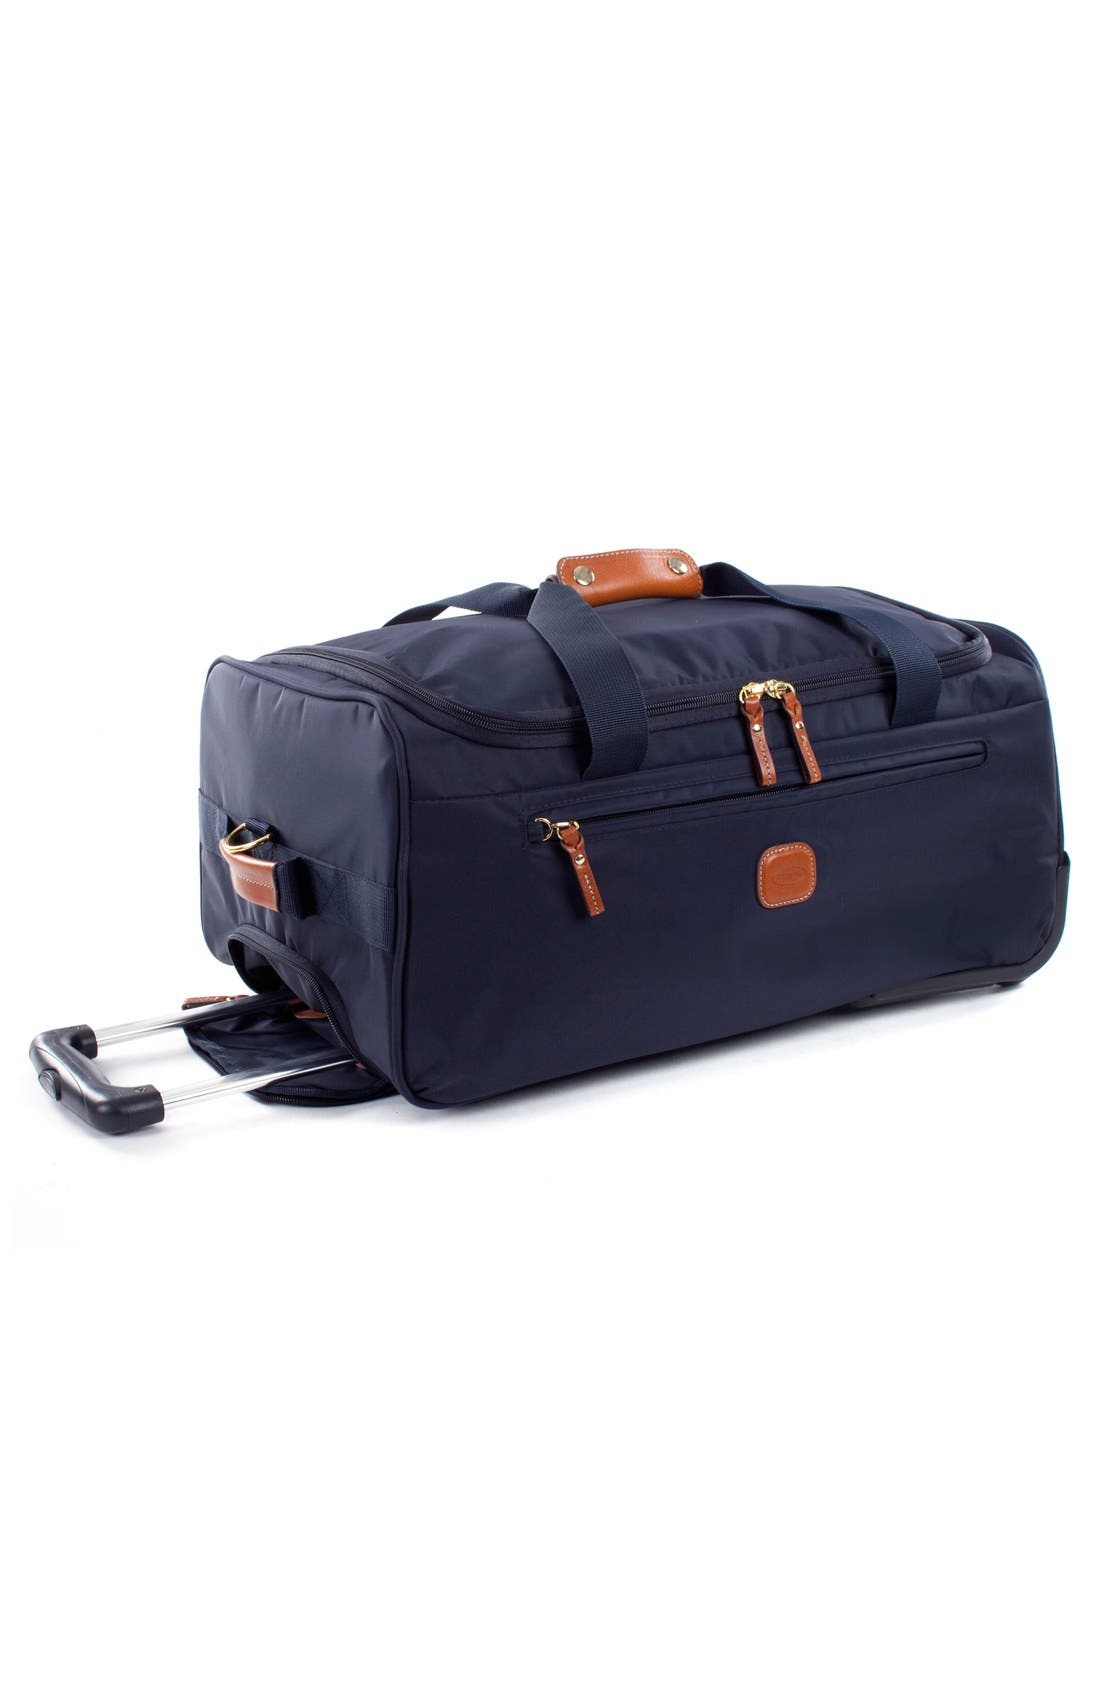 X-Bag 21-Inch Rolling Carry-On Duffel Bag,                             Alternate thumbnail 2, color,                             NAVY